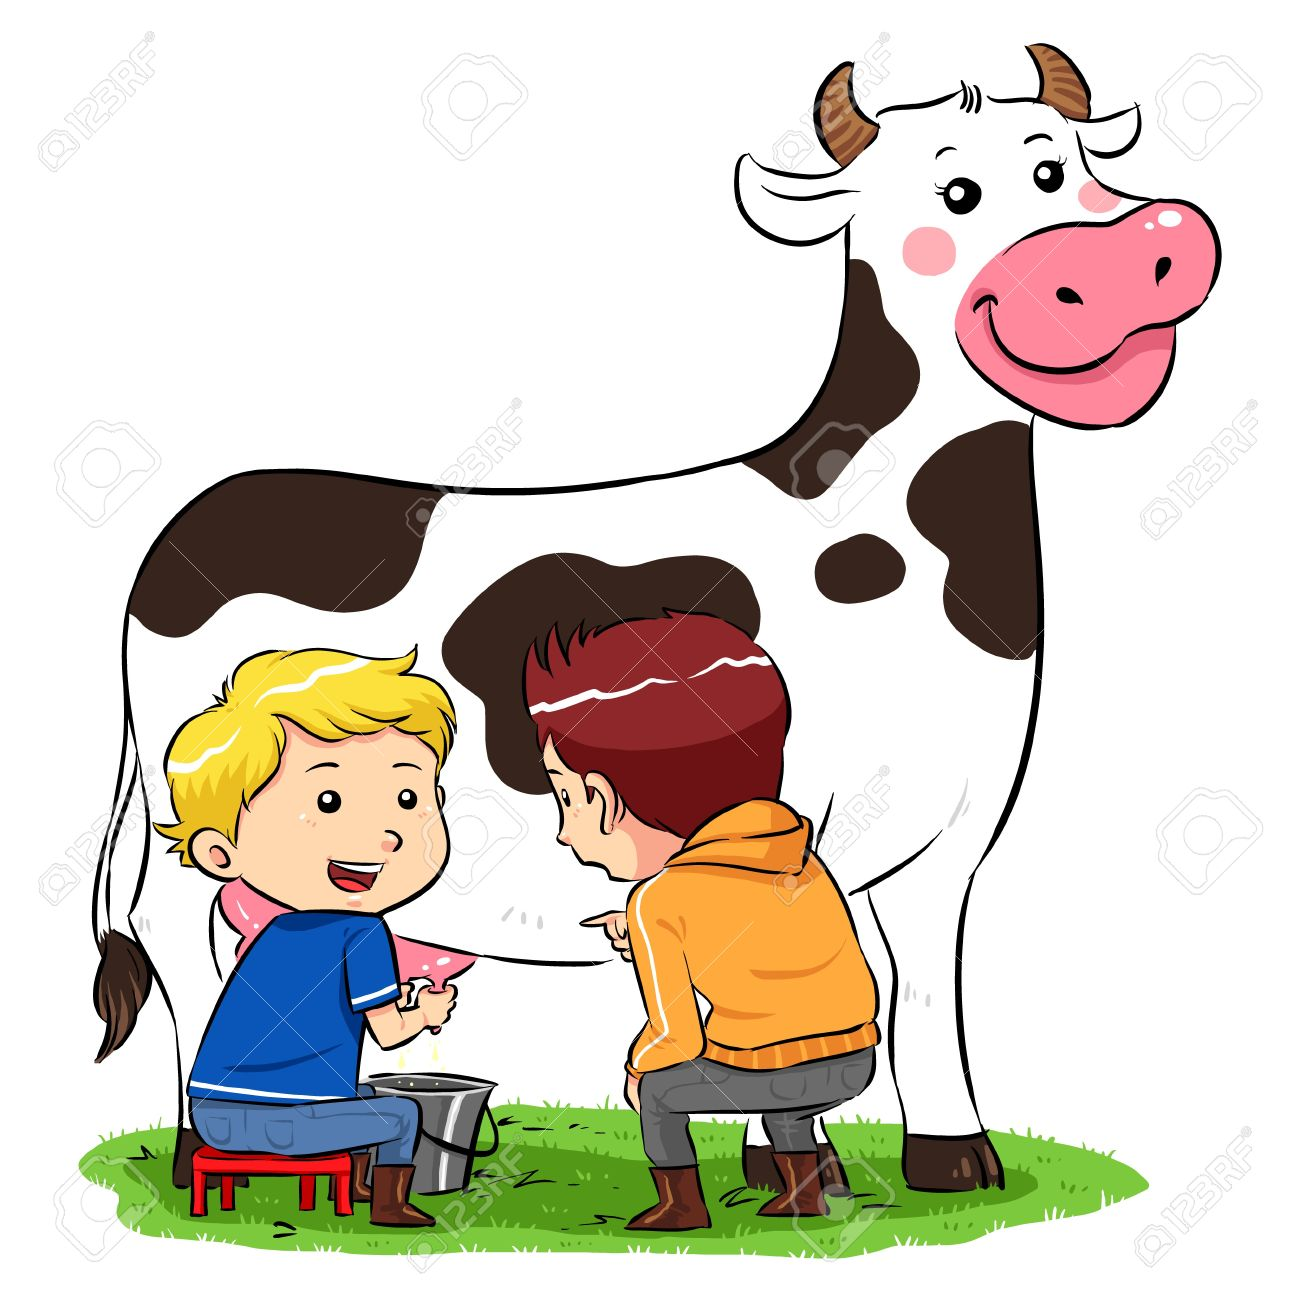 Milking A Cow  Children milking a cow in ranch farm Stock Vector - 20360759